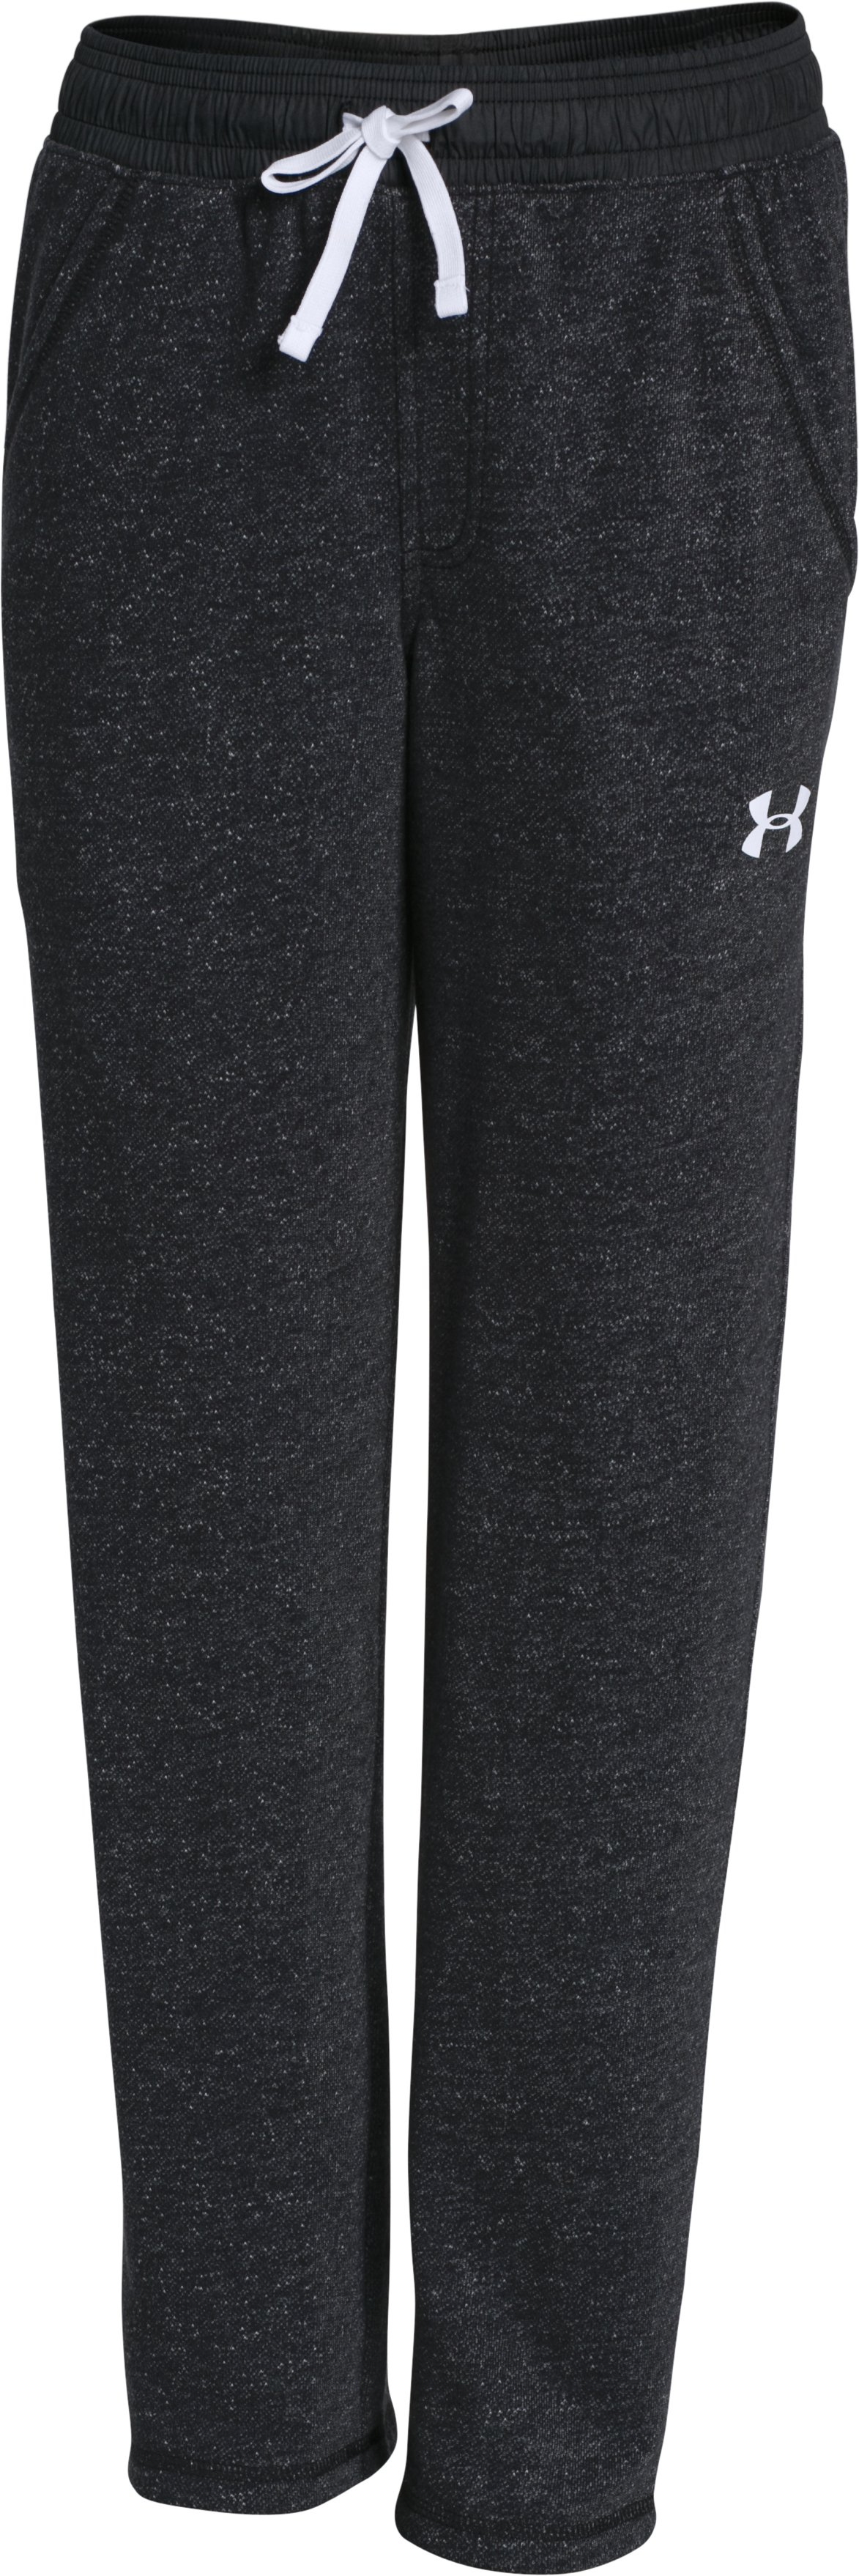 Boys' UA Link Pants, Black